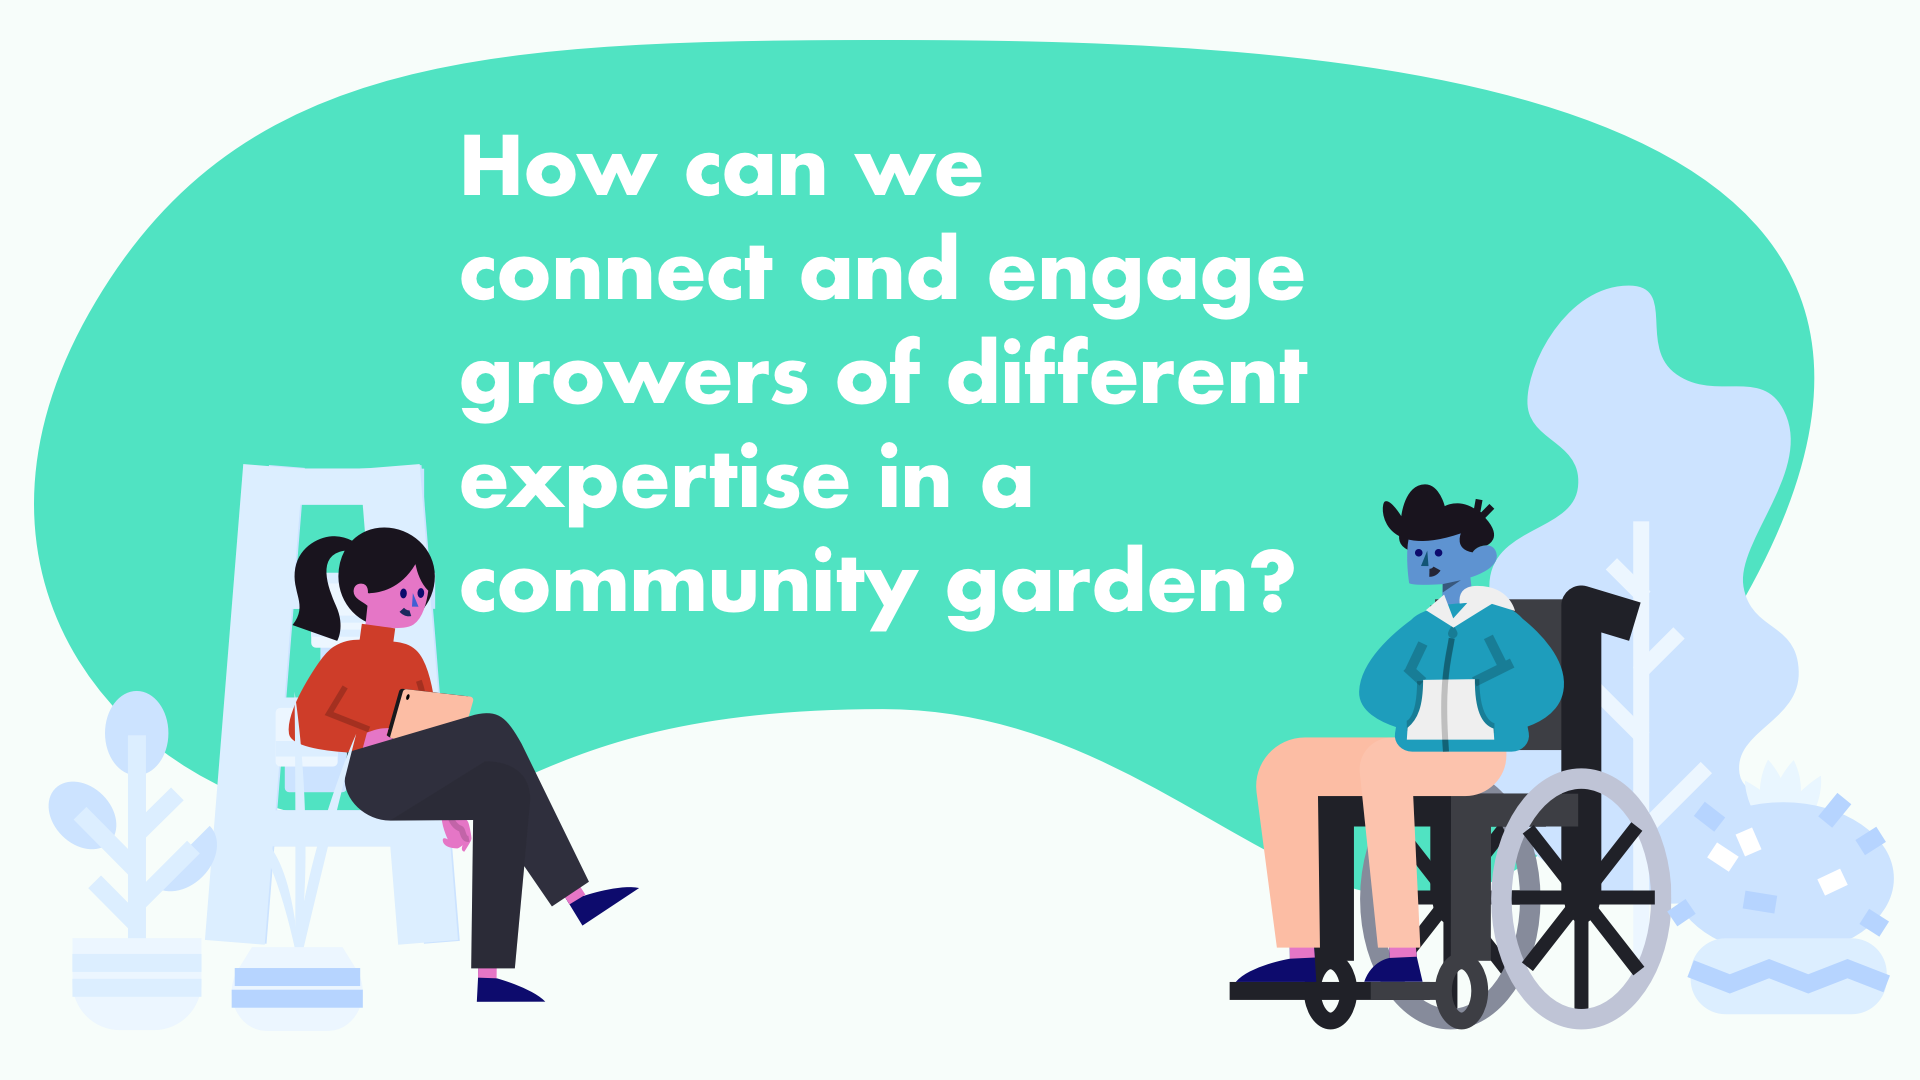 Technology in a Community Garden